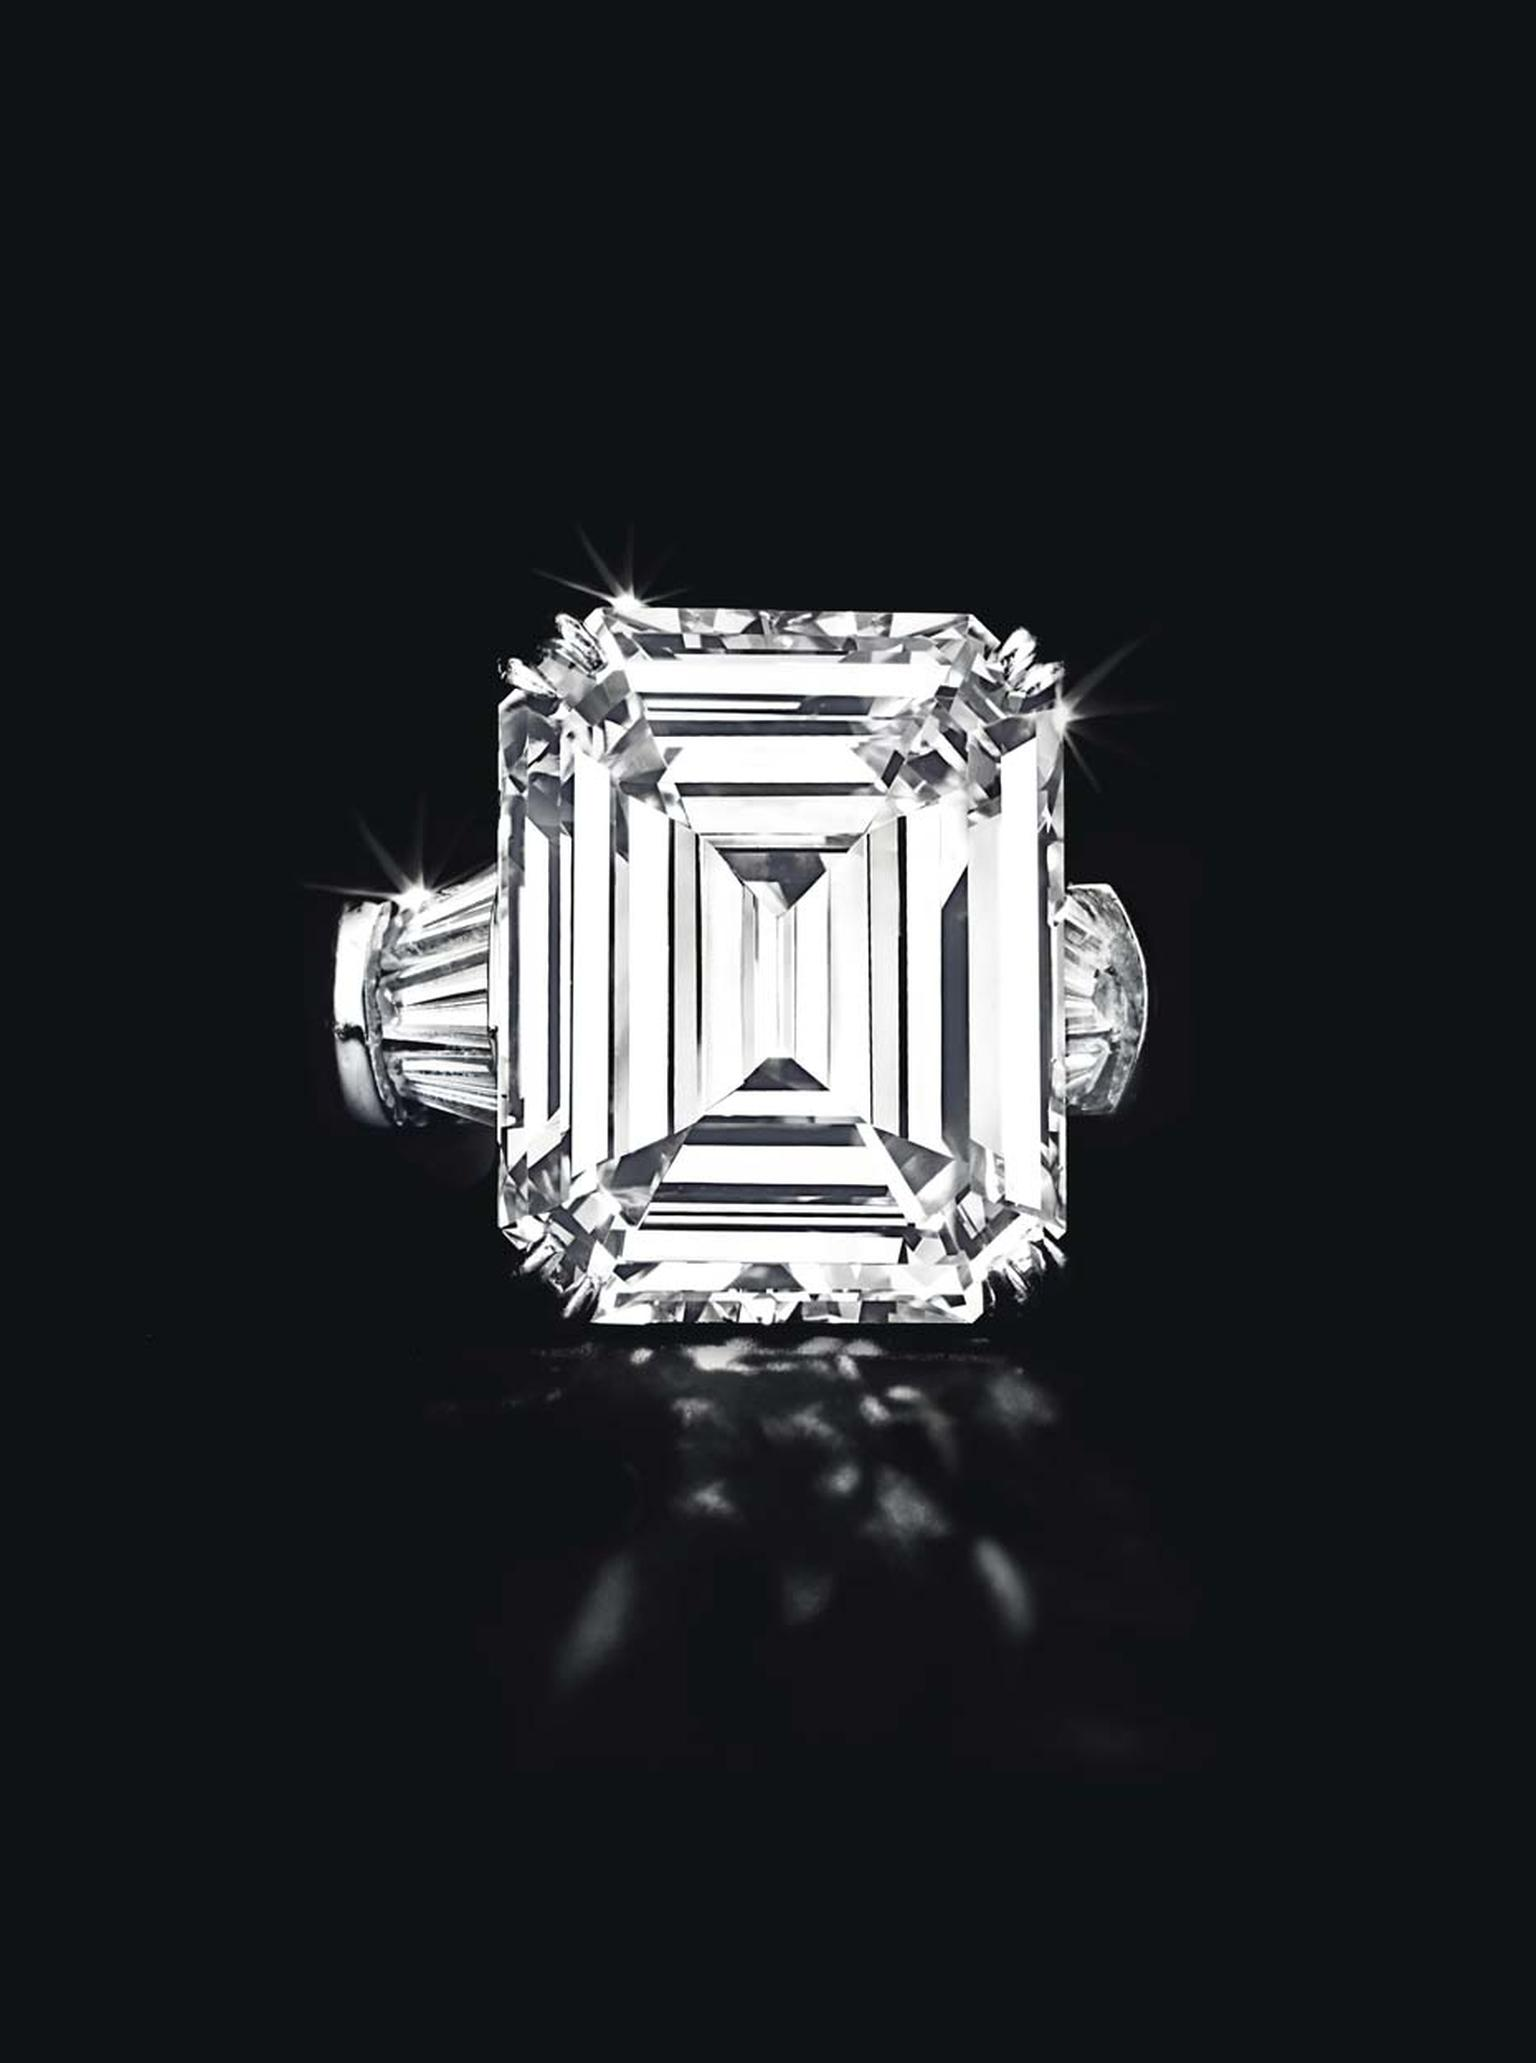 Lot 249, an important diamond ring by Harry Winston, set with a 20.10ct rectangular-cut diamond, flanked by baguette-cut diamonds, mounted in platinum (US$2-3 million)